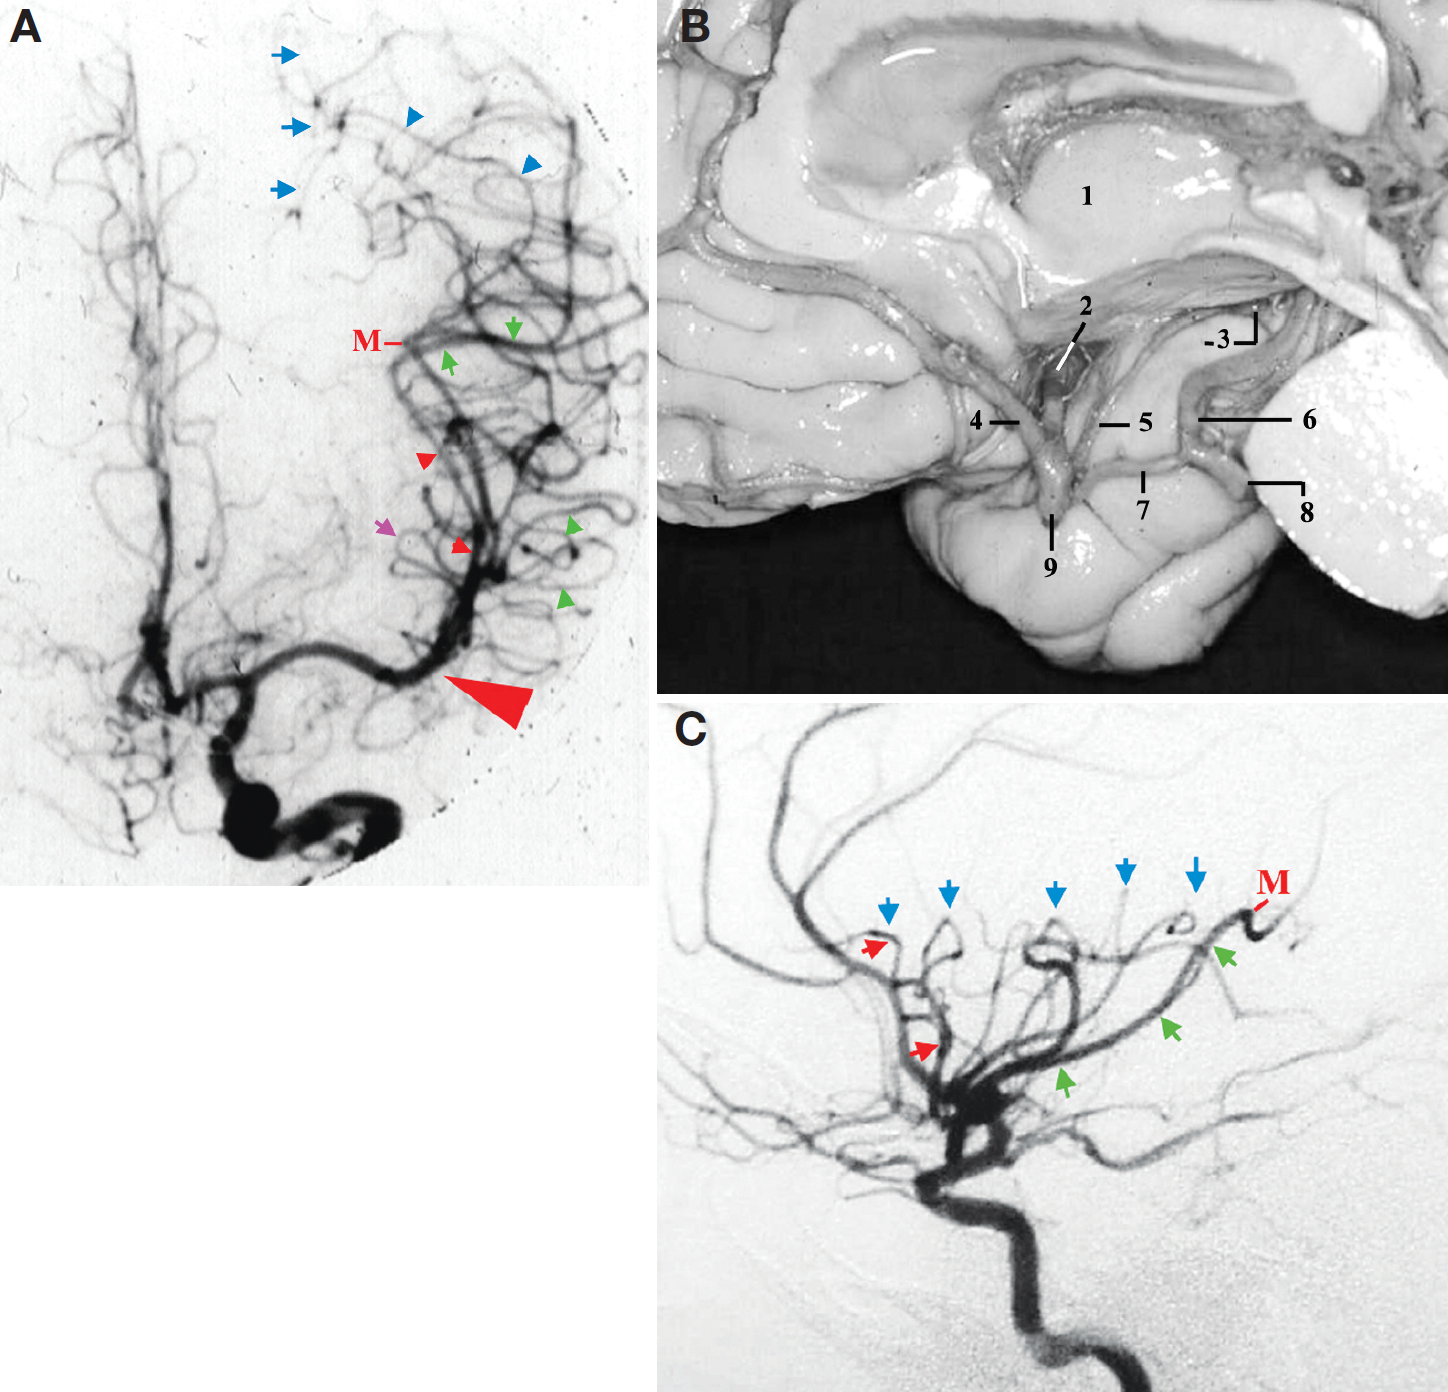 Figure 10. A, carotid angiography, AP view. The small red arrowheads indicate the M2 segment of the MCA. The green arrowheads indicate the M3 segment of the MCA over the planum polare. The green arrows indicate the M3 segment of the MCA over the planum temporale. The blue arrowheads indicate the M4 segment of the MCA over the parietal area. The blue arrows indicate the location of the intraparietal sulcus. The purple arrow indicates the superior limiting sulcus of insula. The large red arrowhead indicates the projection of the location of the tip of the pars triangularis, just distal to the genu of the MCA. B, medial view of the right cerebral hemisphere with the crus cerebri removed to display the trajectory of the M1 segment in this projection. 1, thalamus; 2, M1 segment of the MCA; 3, uncus and the inferior choroidal point; 4, anterior cerebral artery; 5, anterior choroidal artery; 6, P2A segment of posterior cerebral artery; 7, posterior communicating artery; 8, P1 segment of posterior cerebral artery; 9, supraclinoid carotid artery. C, carotid angiography, lateral view. The red arrows indicate anterior limiting sulcus. Blue arrows indicate superior limiting sulcus. The green arrows indicate inferior limiting sulcus. M, sylvian point. (Images courtesy of AL Rhoton, Jr.)